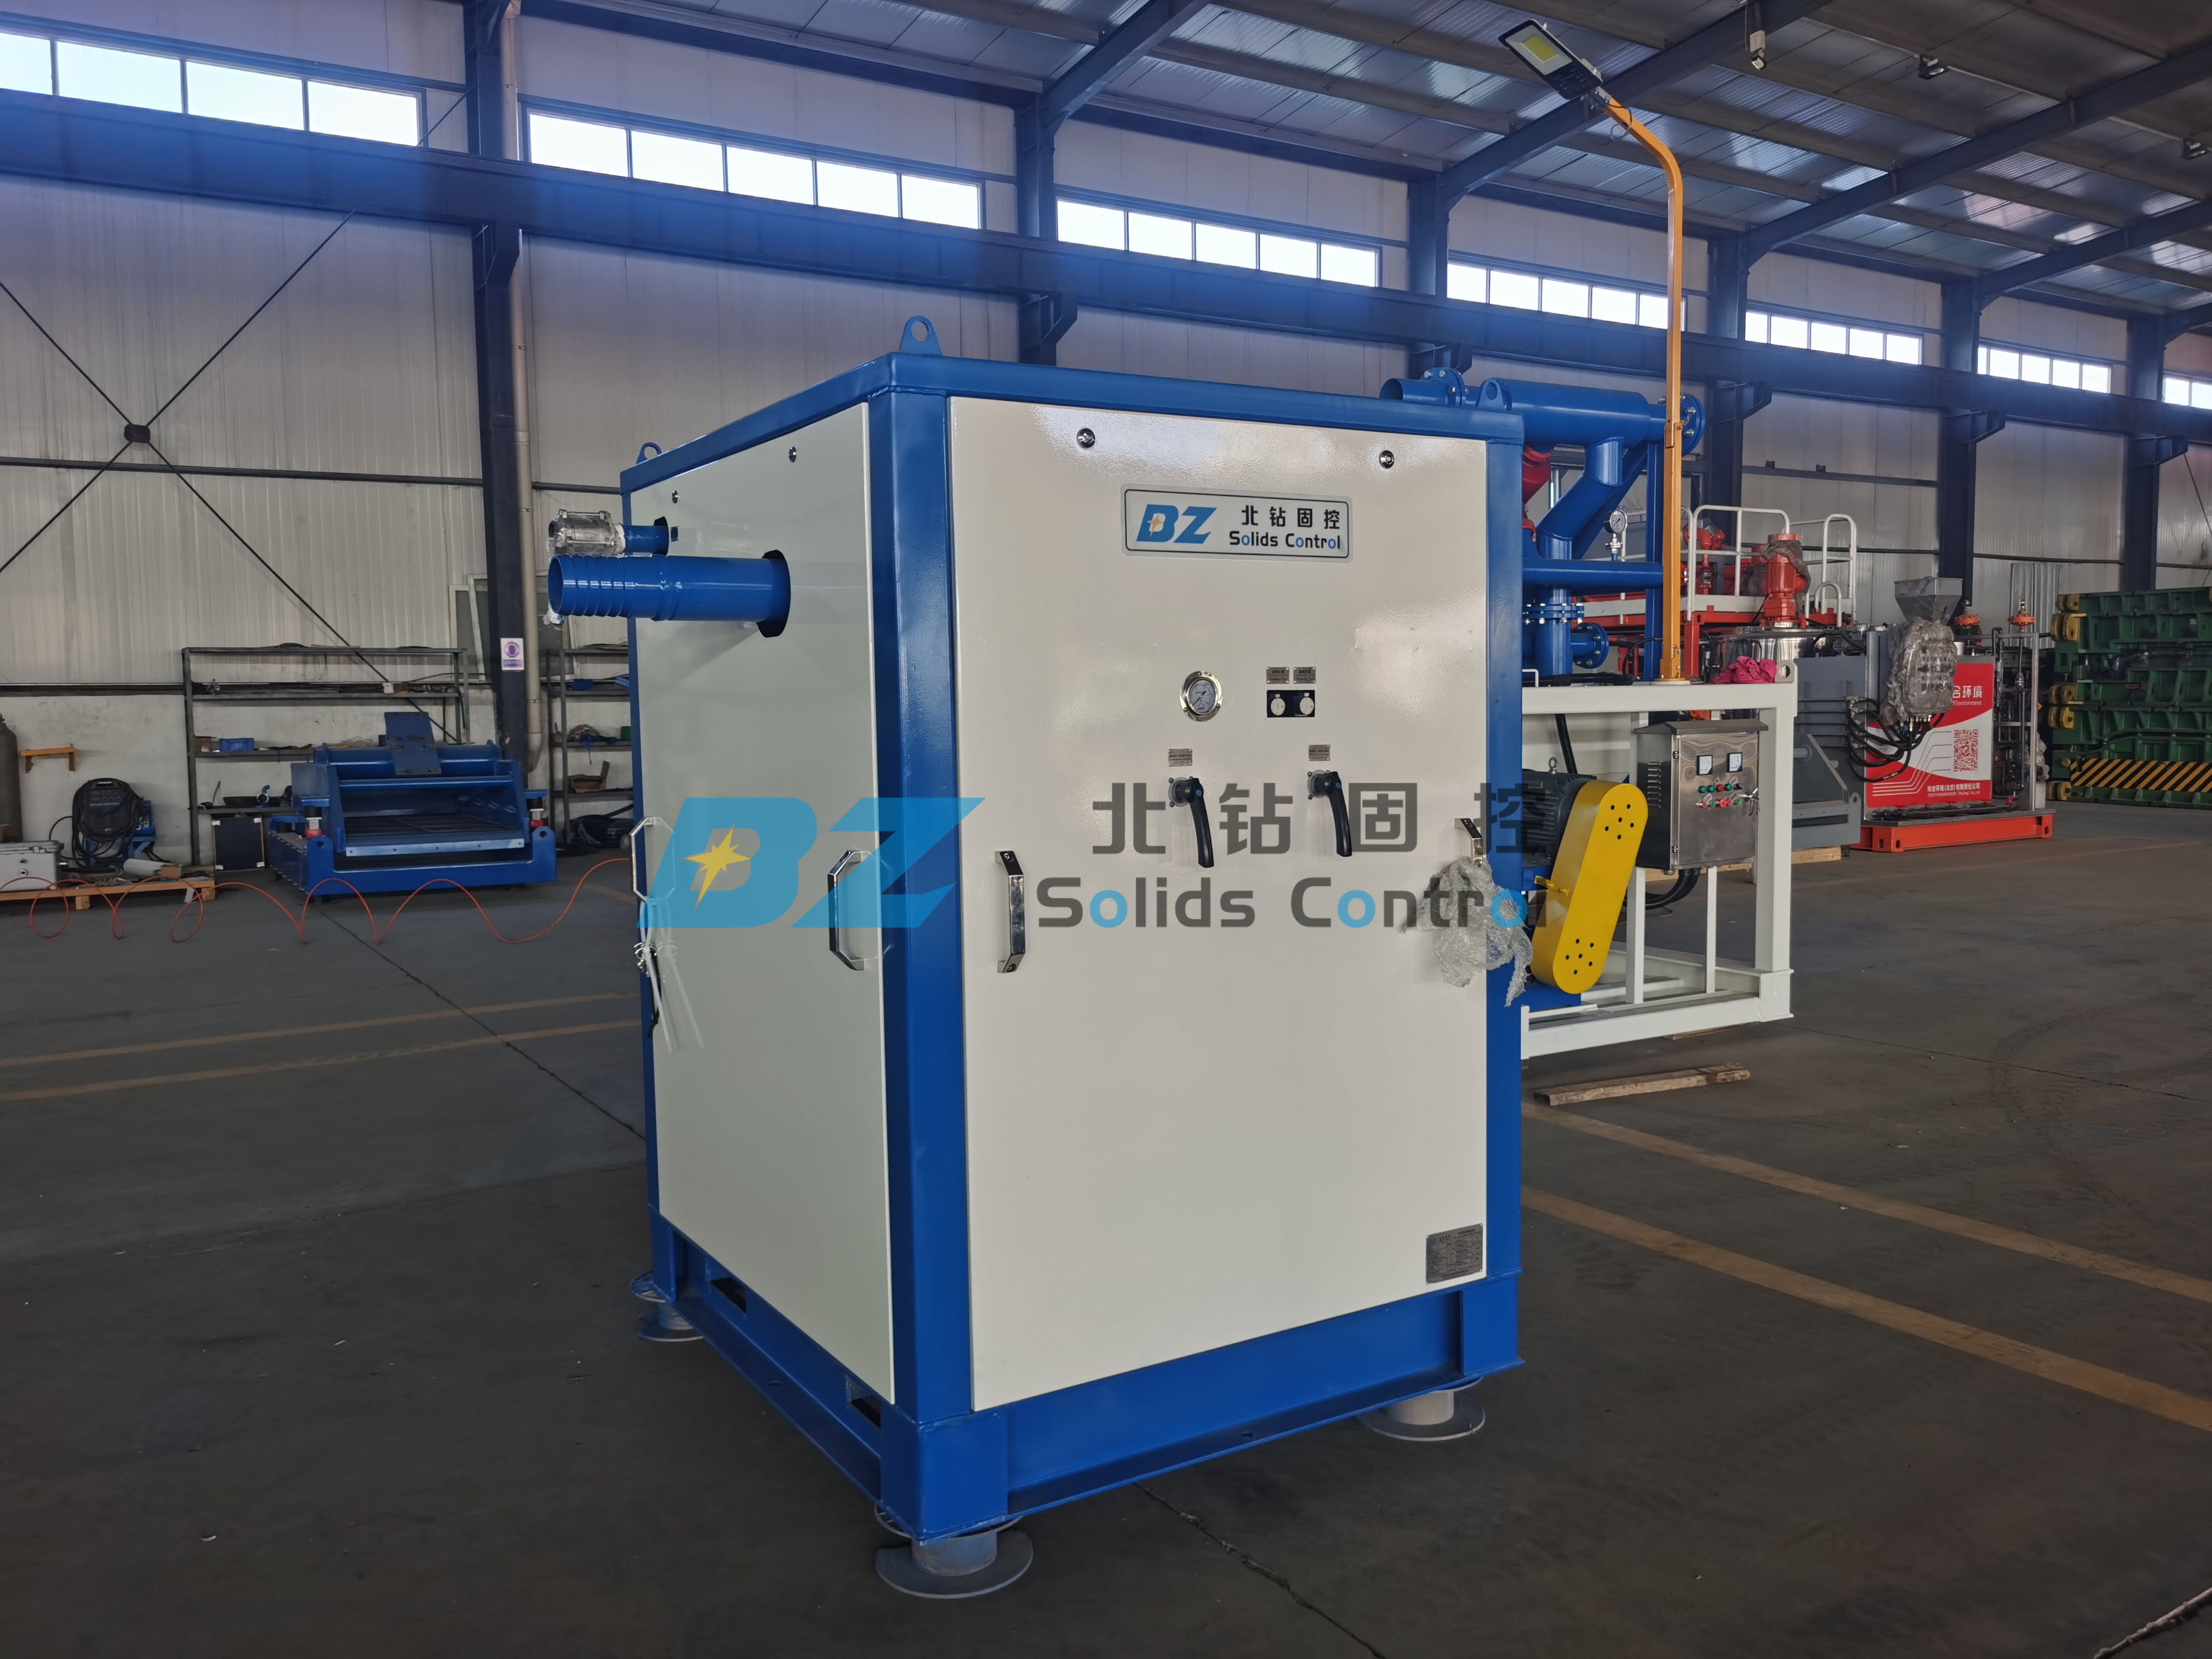 BZ Vacuum solids convey pump is using for oil tank cleaning